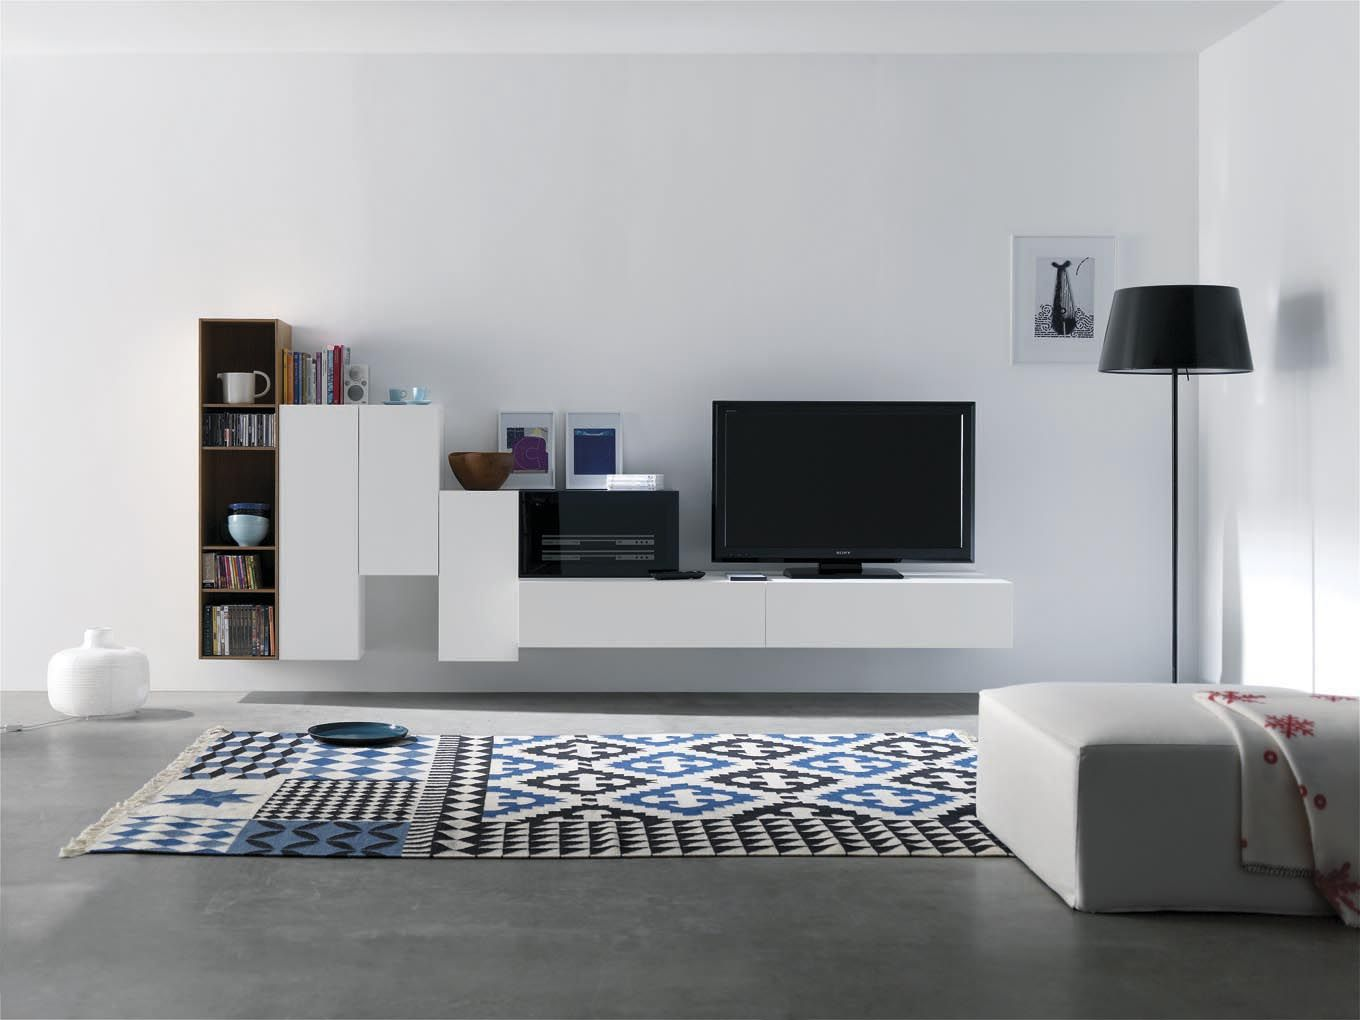 Modular Tv Acabado Roble Blanco Y Azul Vive Ideas Para El  # Muebles Suspendidos Para Tv